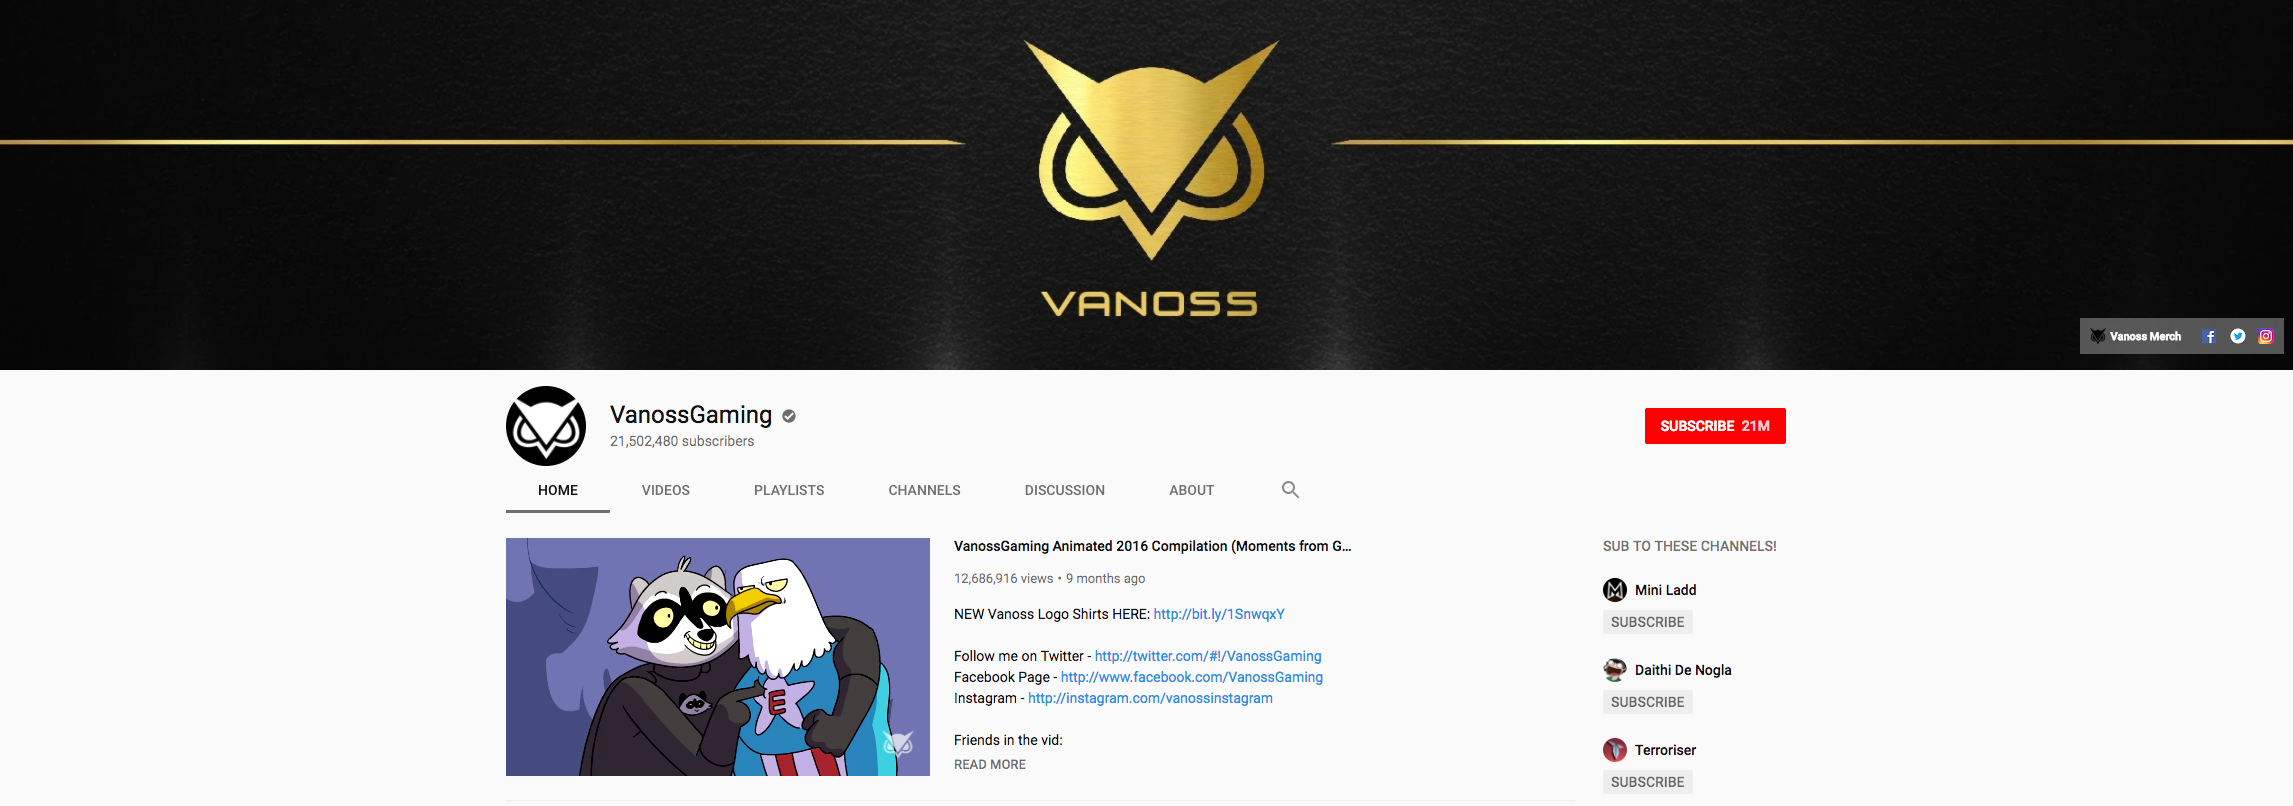 VanossGaming Top Gaming Influencers